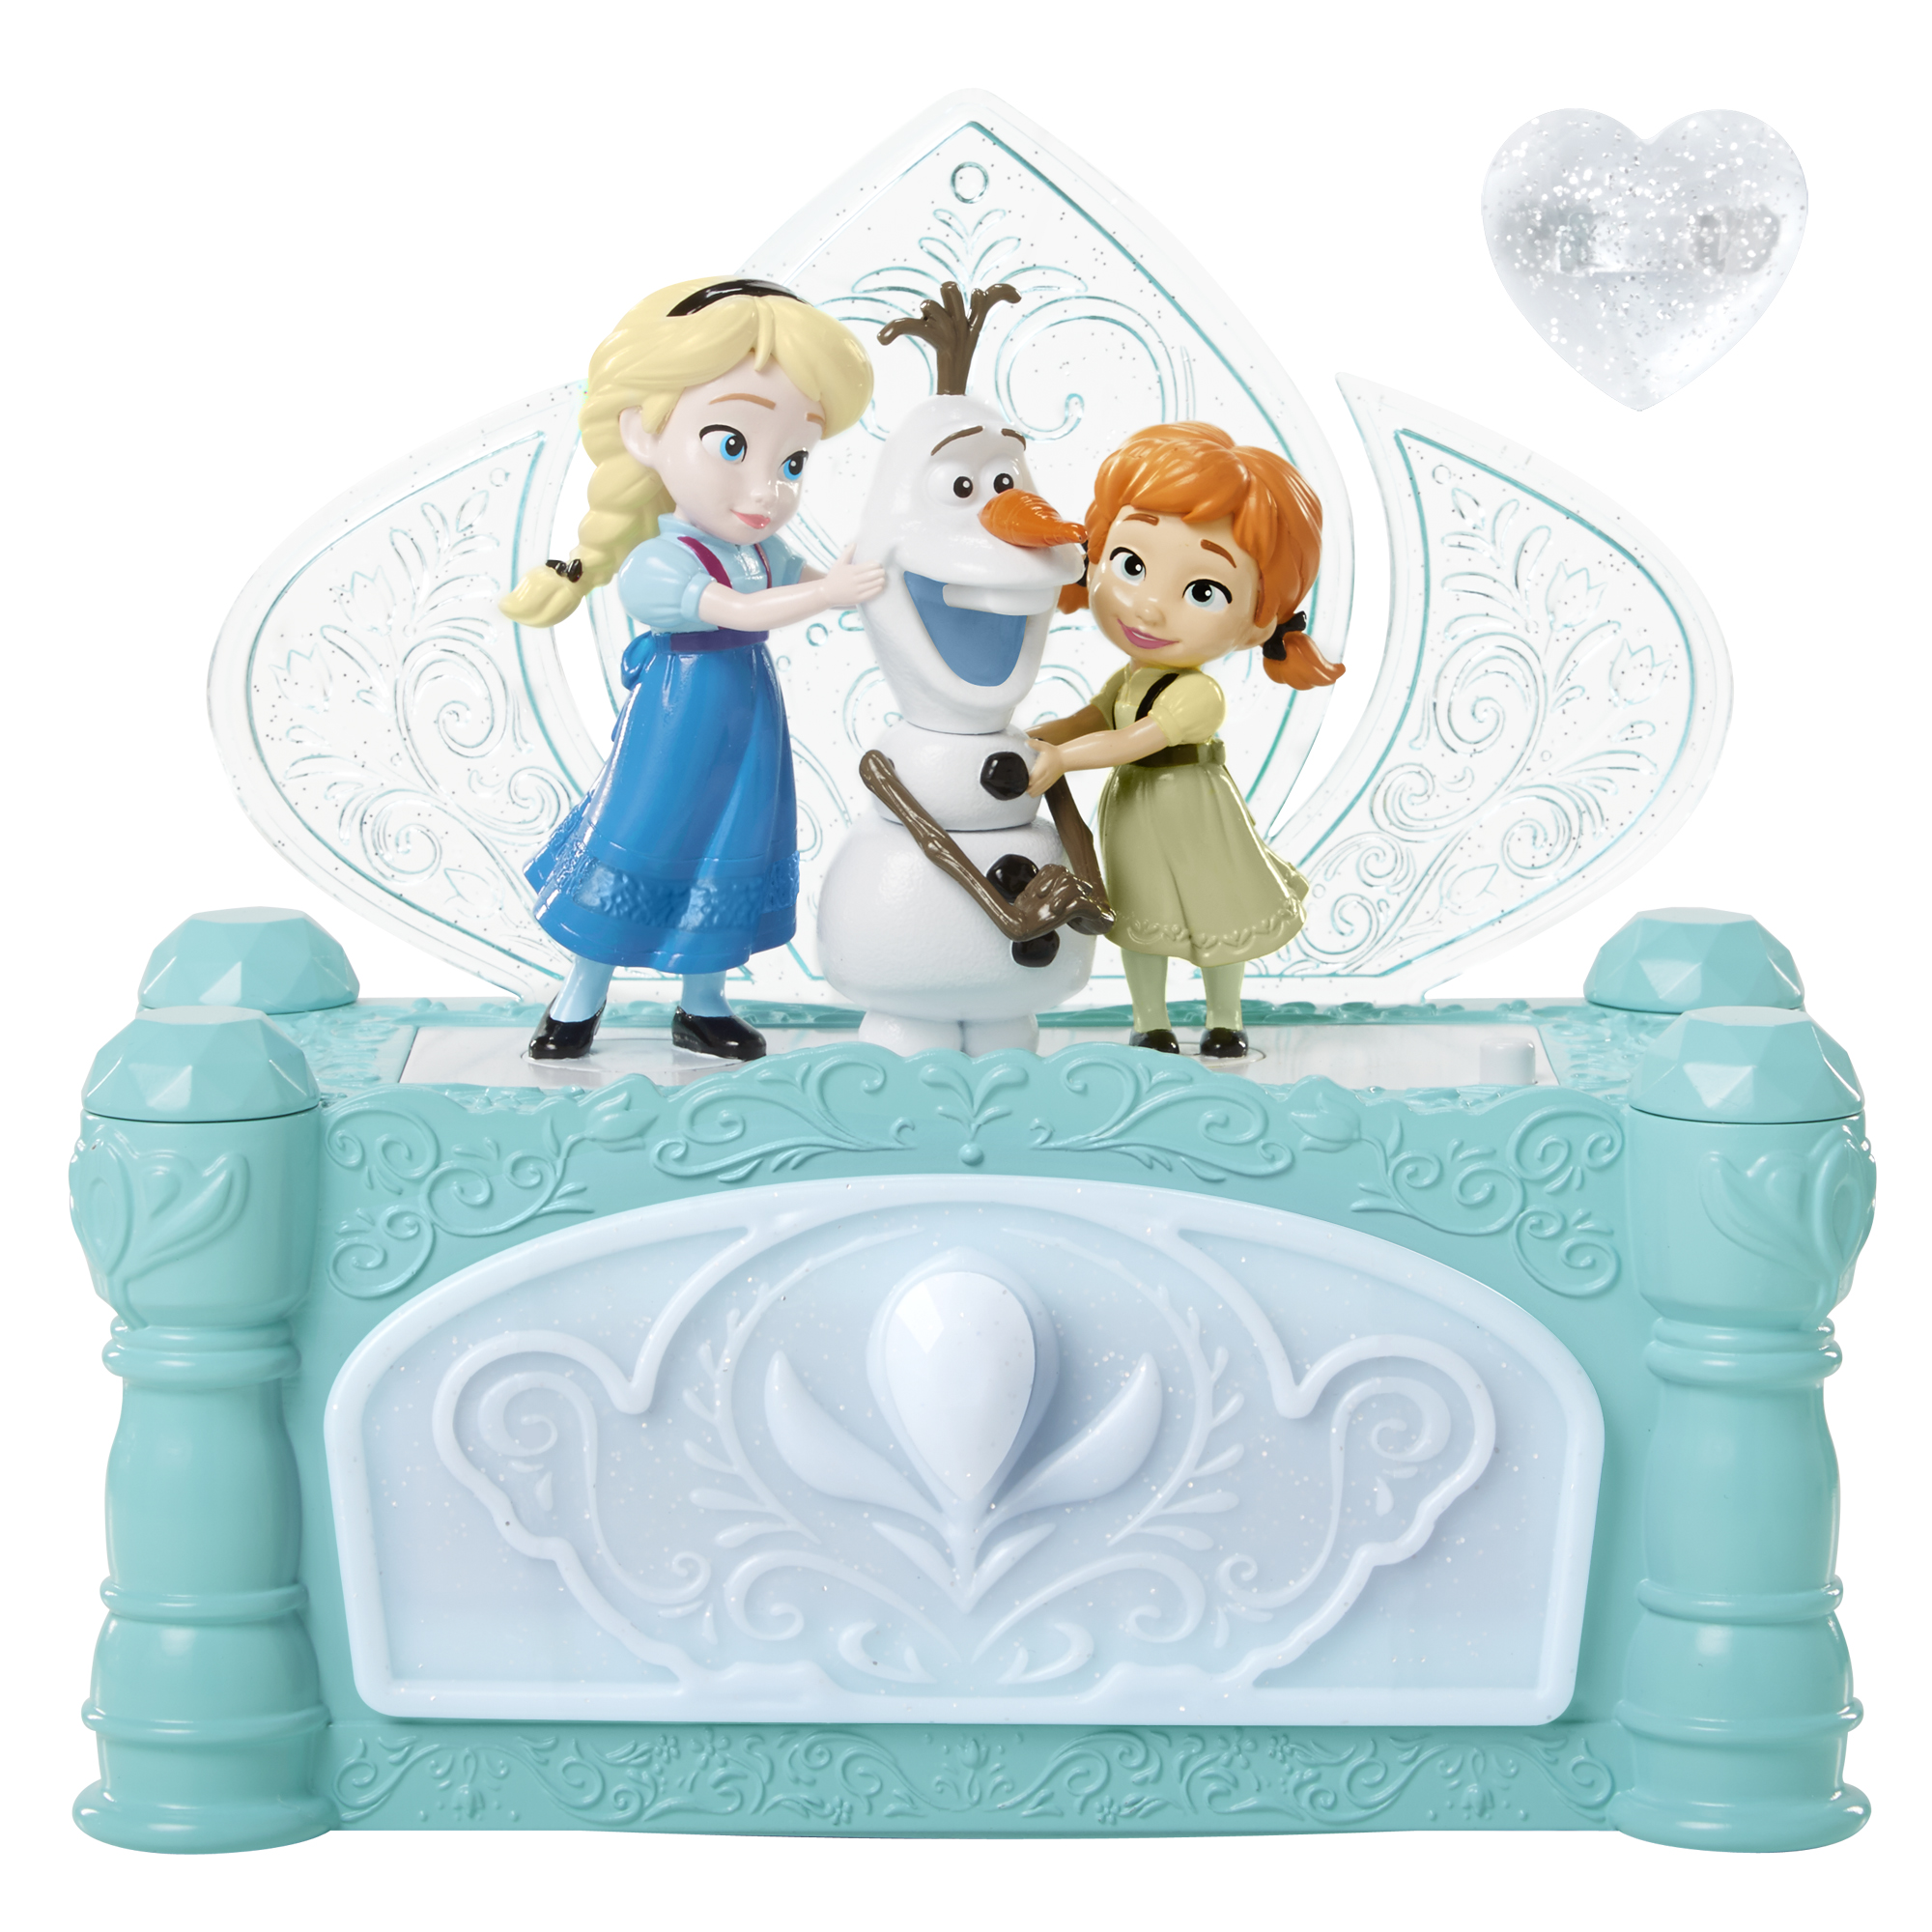 Disney Frozen 'Do You Want to Build a Snowman?' Musical Jewelry Box PartNumber: 004W007987094001P